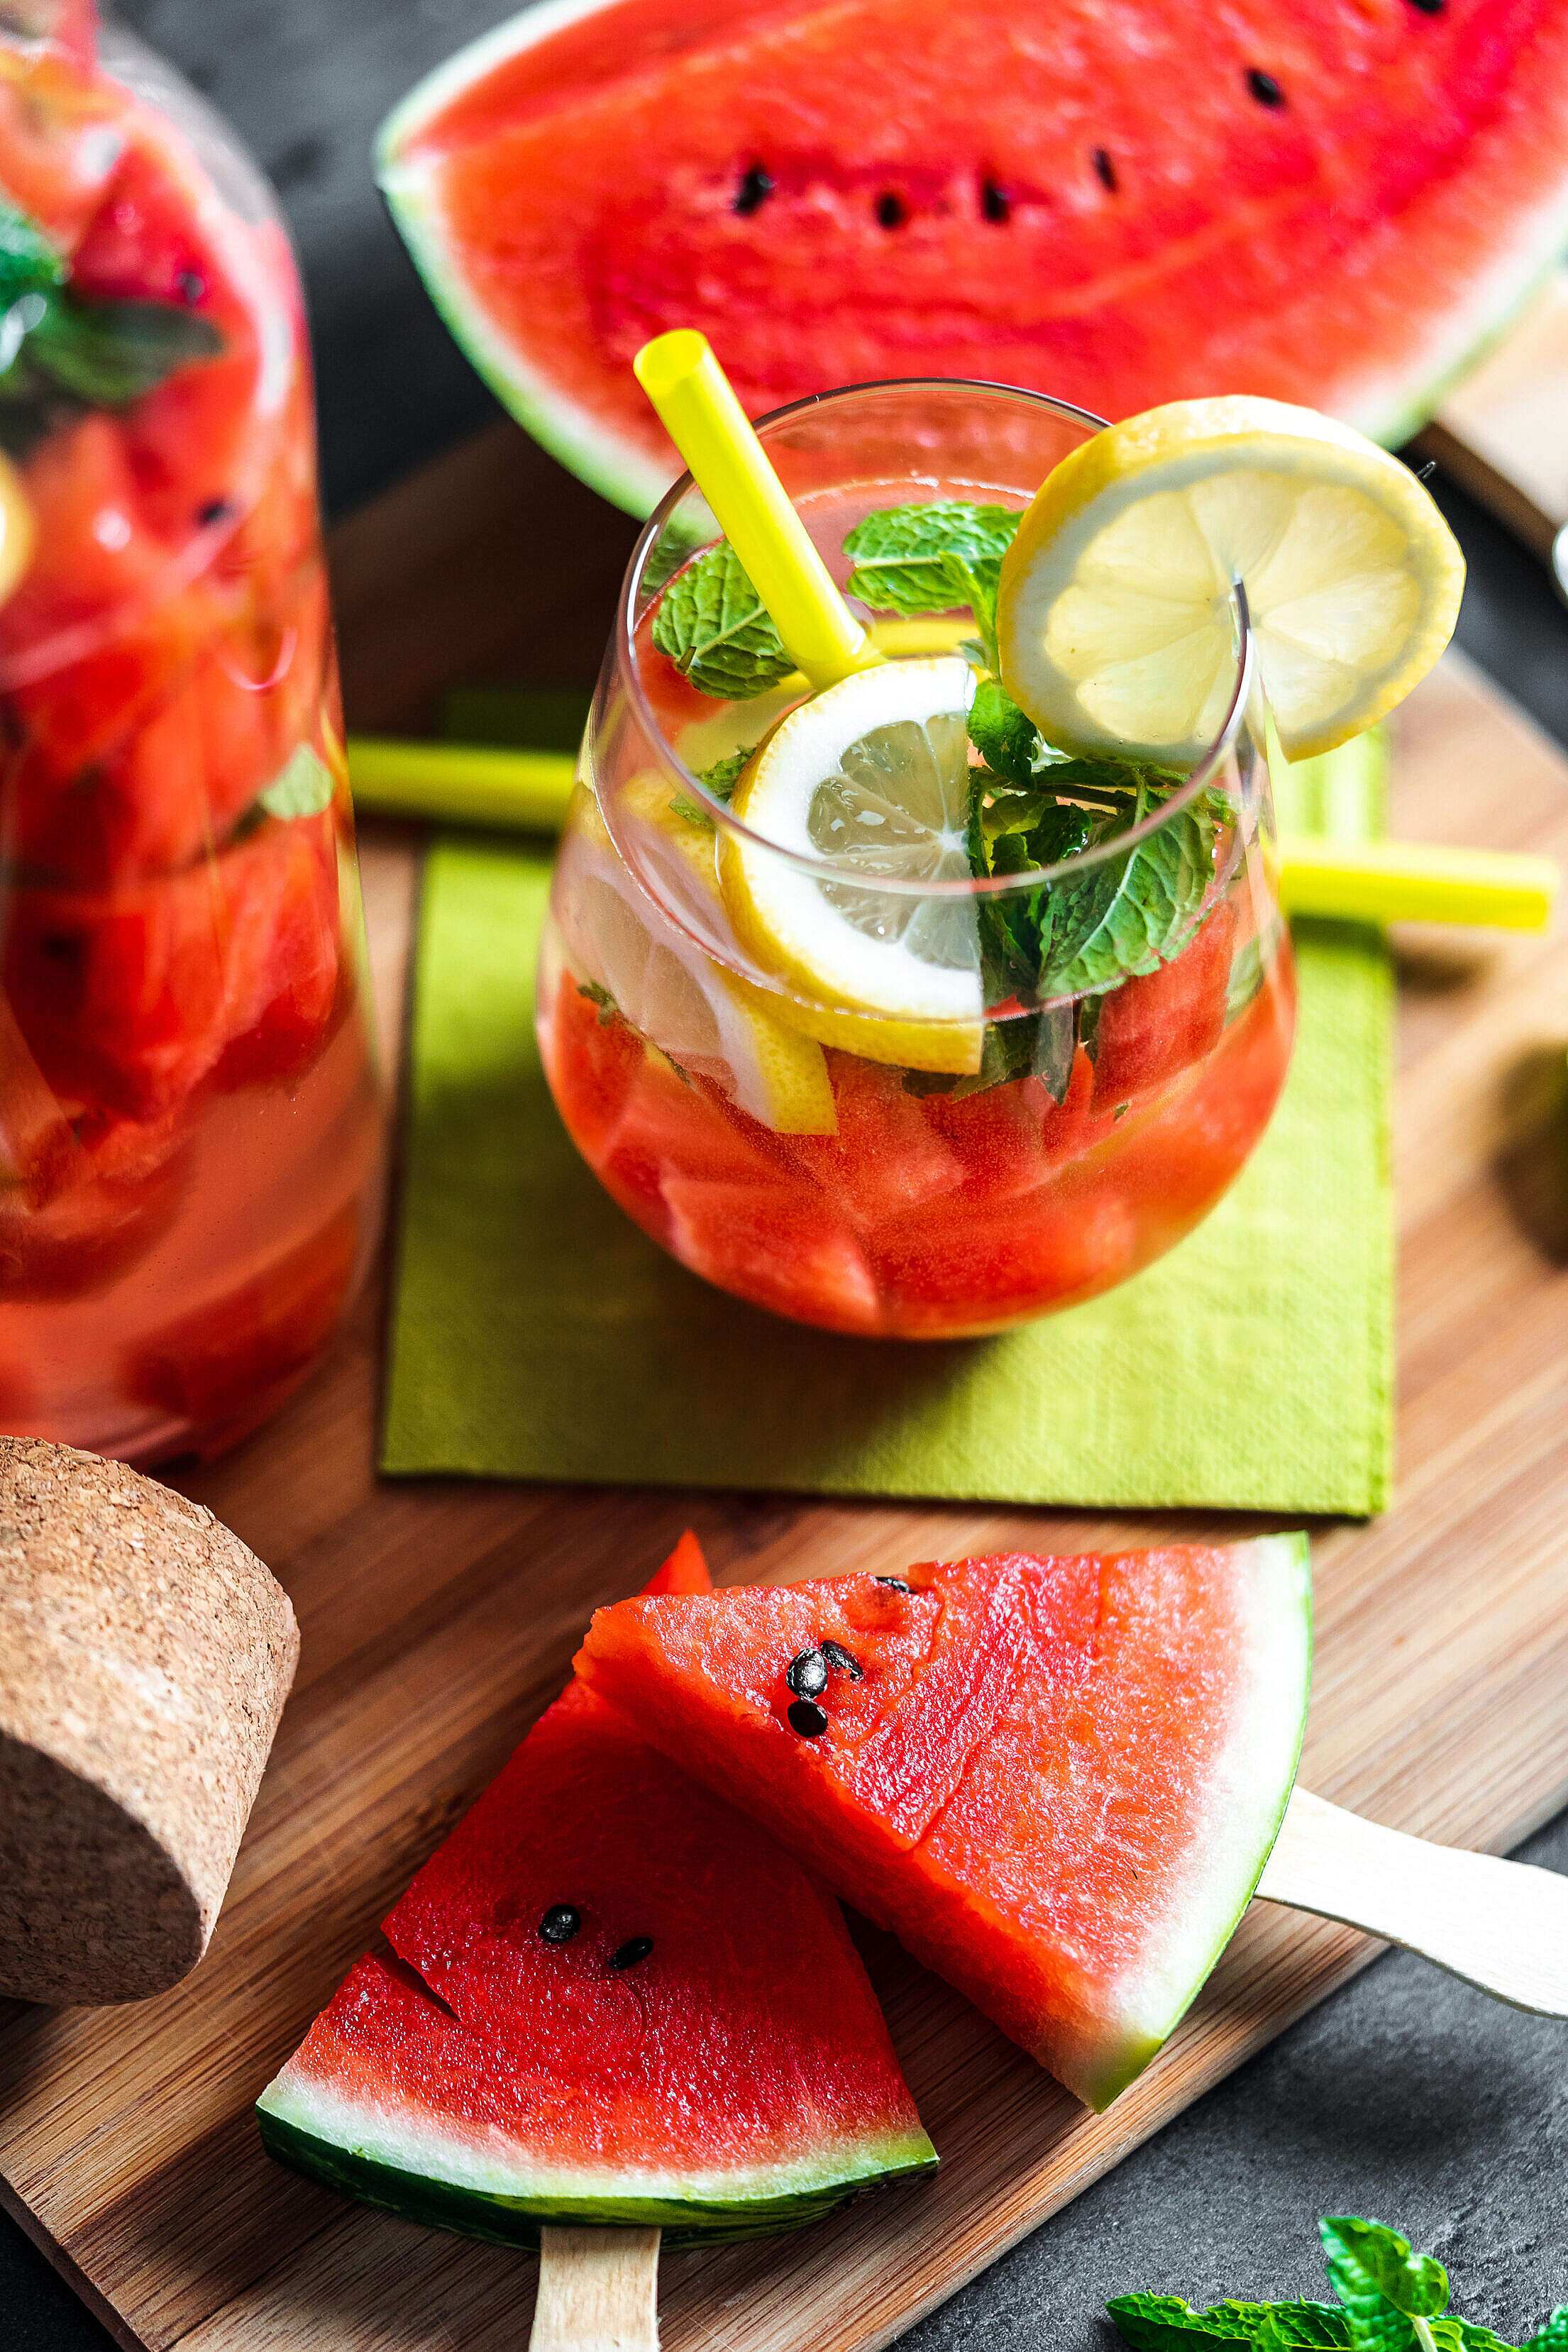 Watermelon Healthy Snack and Drink Free Stock Photo